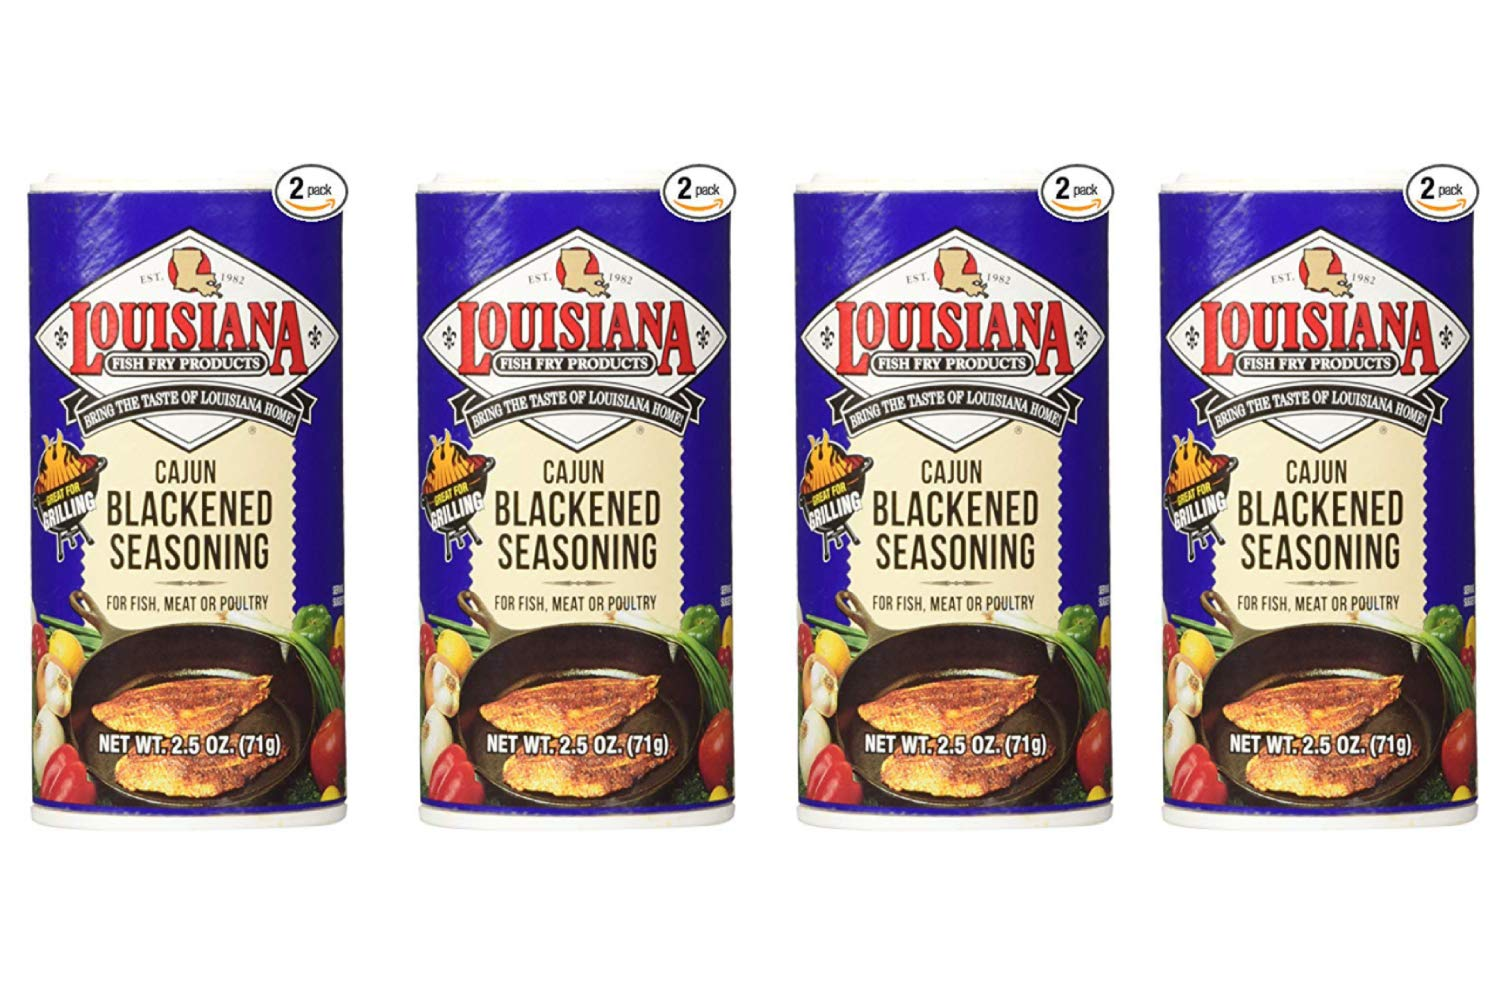 Louisiana Cajun Blackened Seasoning (71 Grams Shakers) 2 Count (4 Pack)